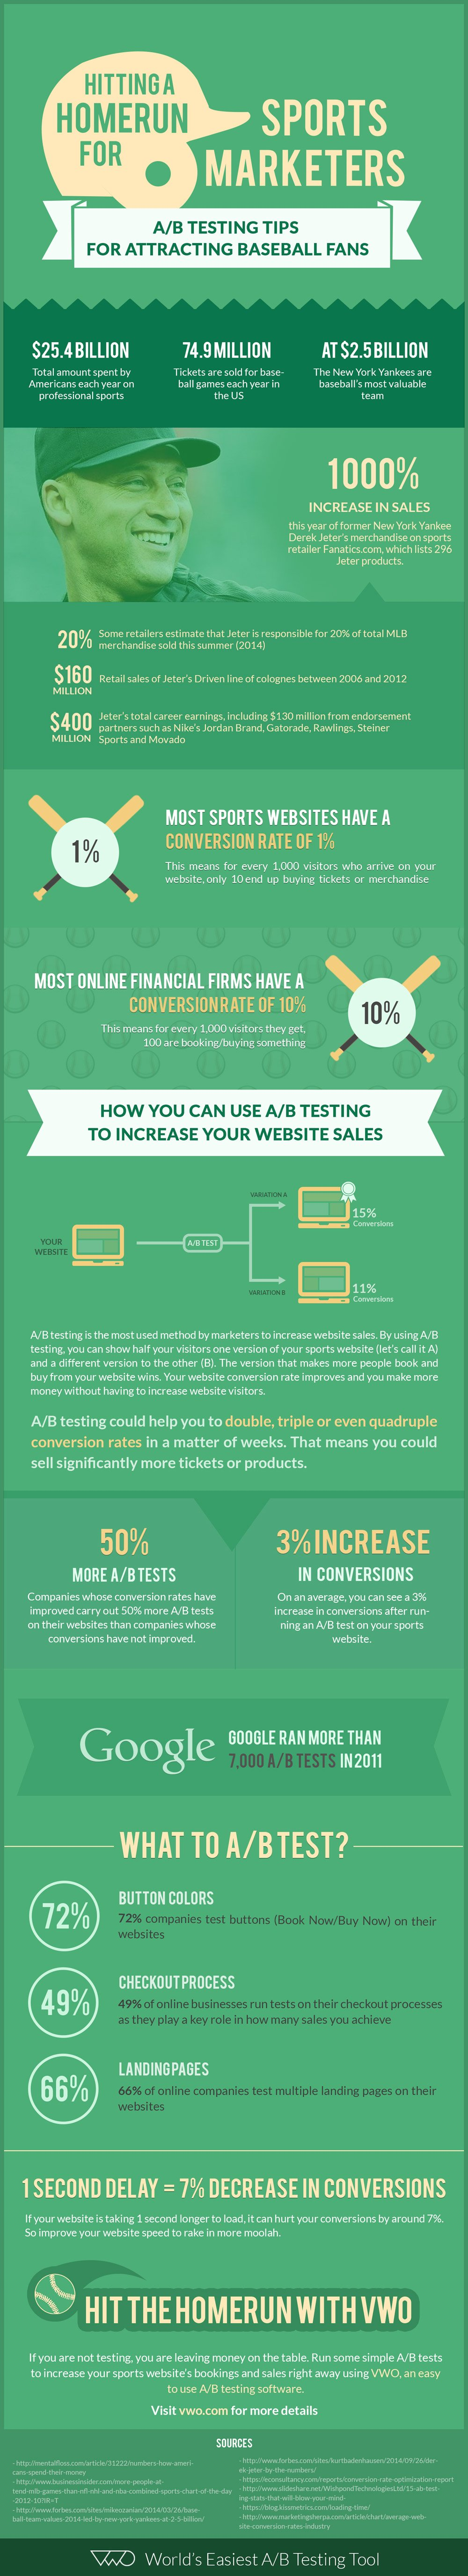 Sports Marketers Infographic on AB Testing - VWO Blog